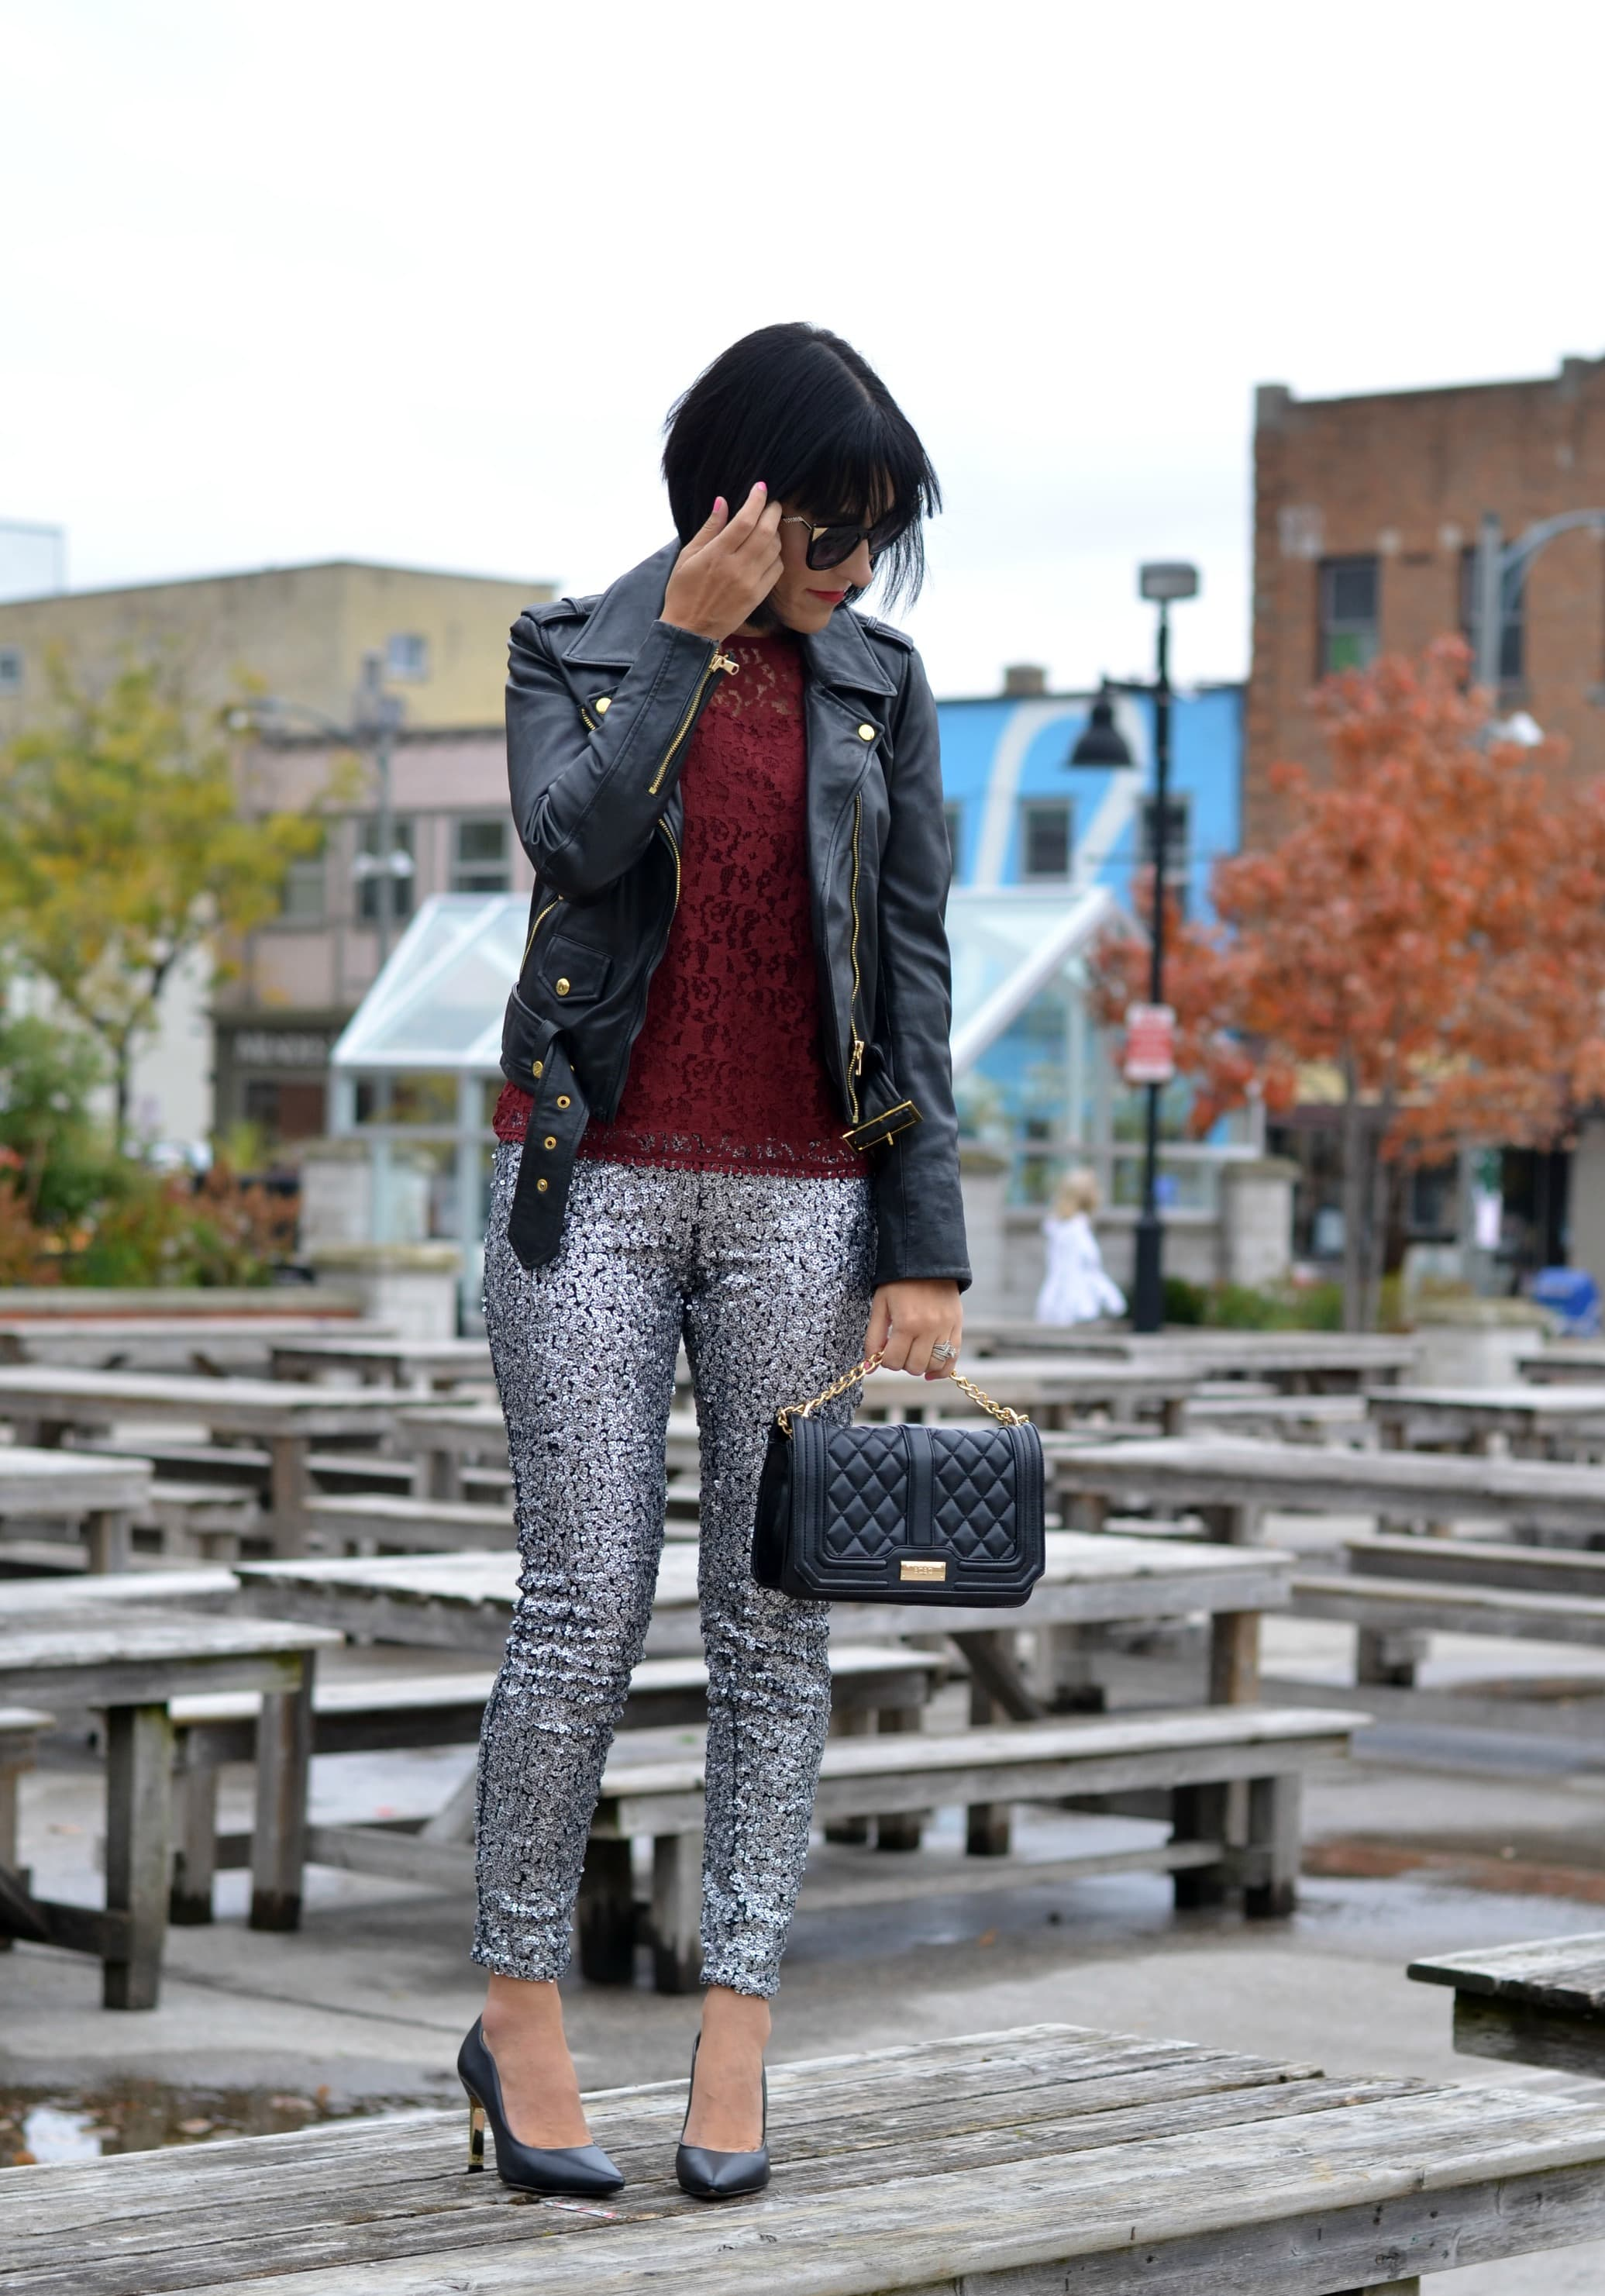 sparkly leggings